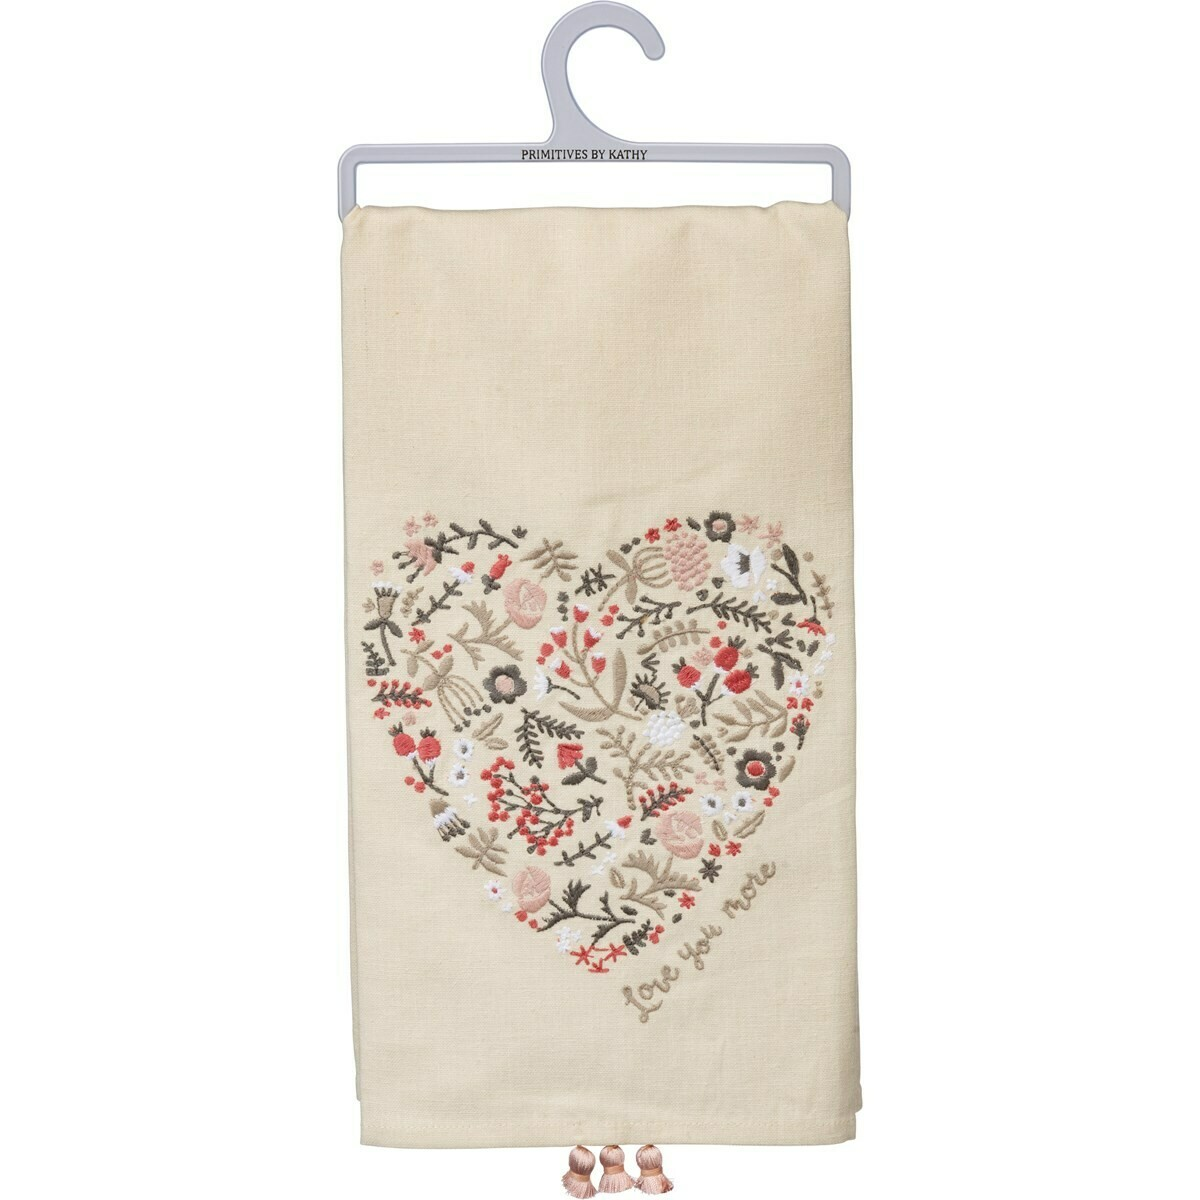 Love You More Heart Towel